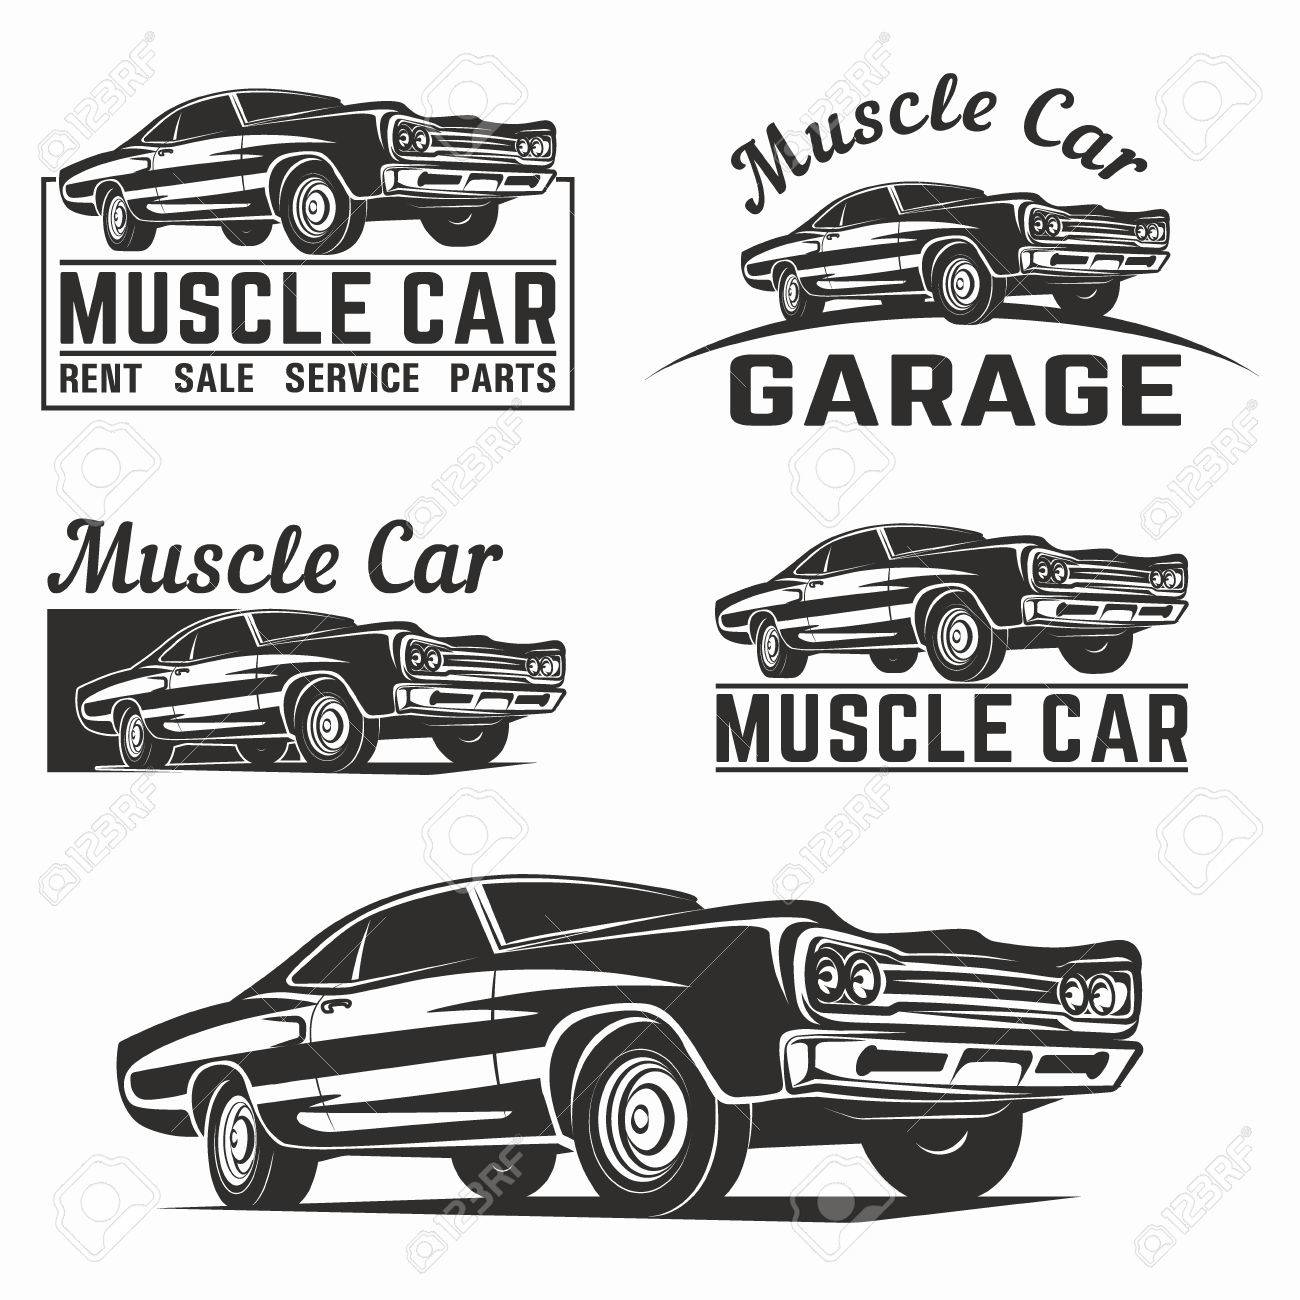 Muscle car vector poster illustration - 58812771